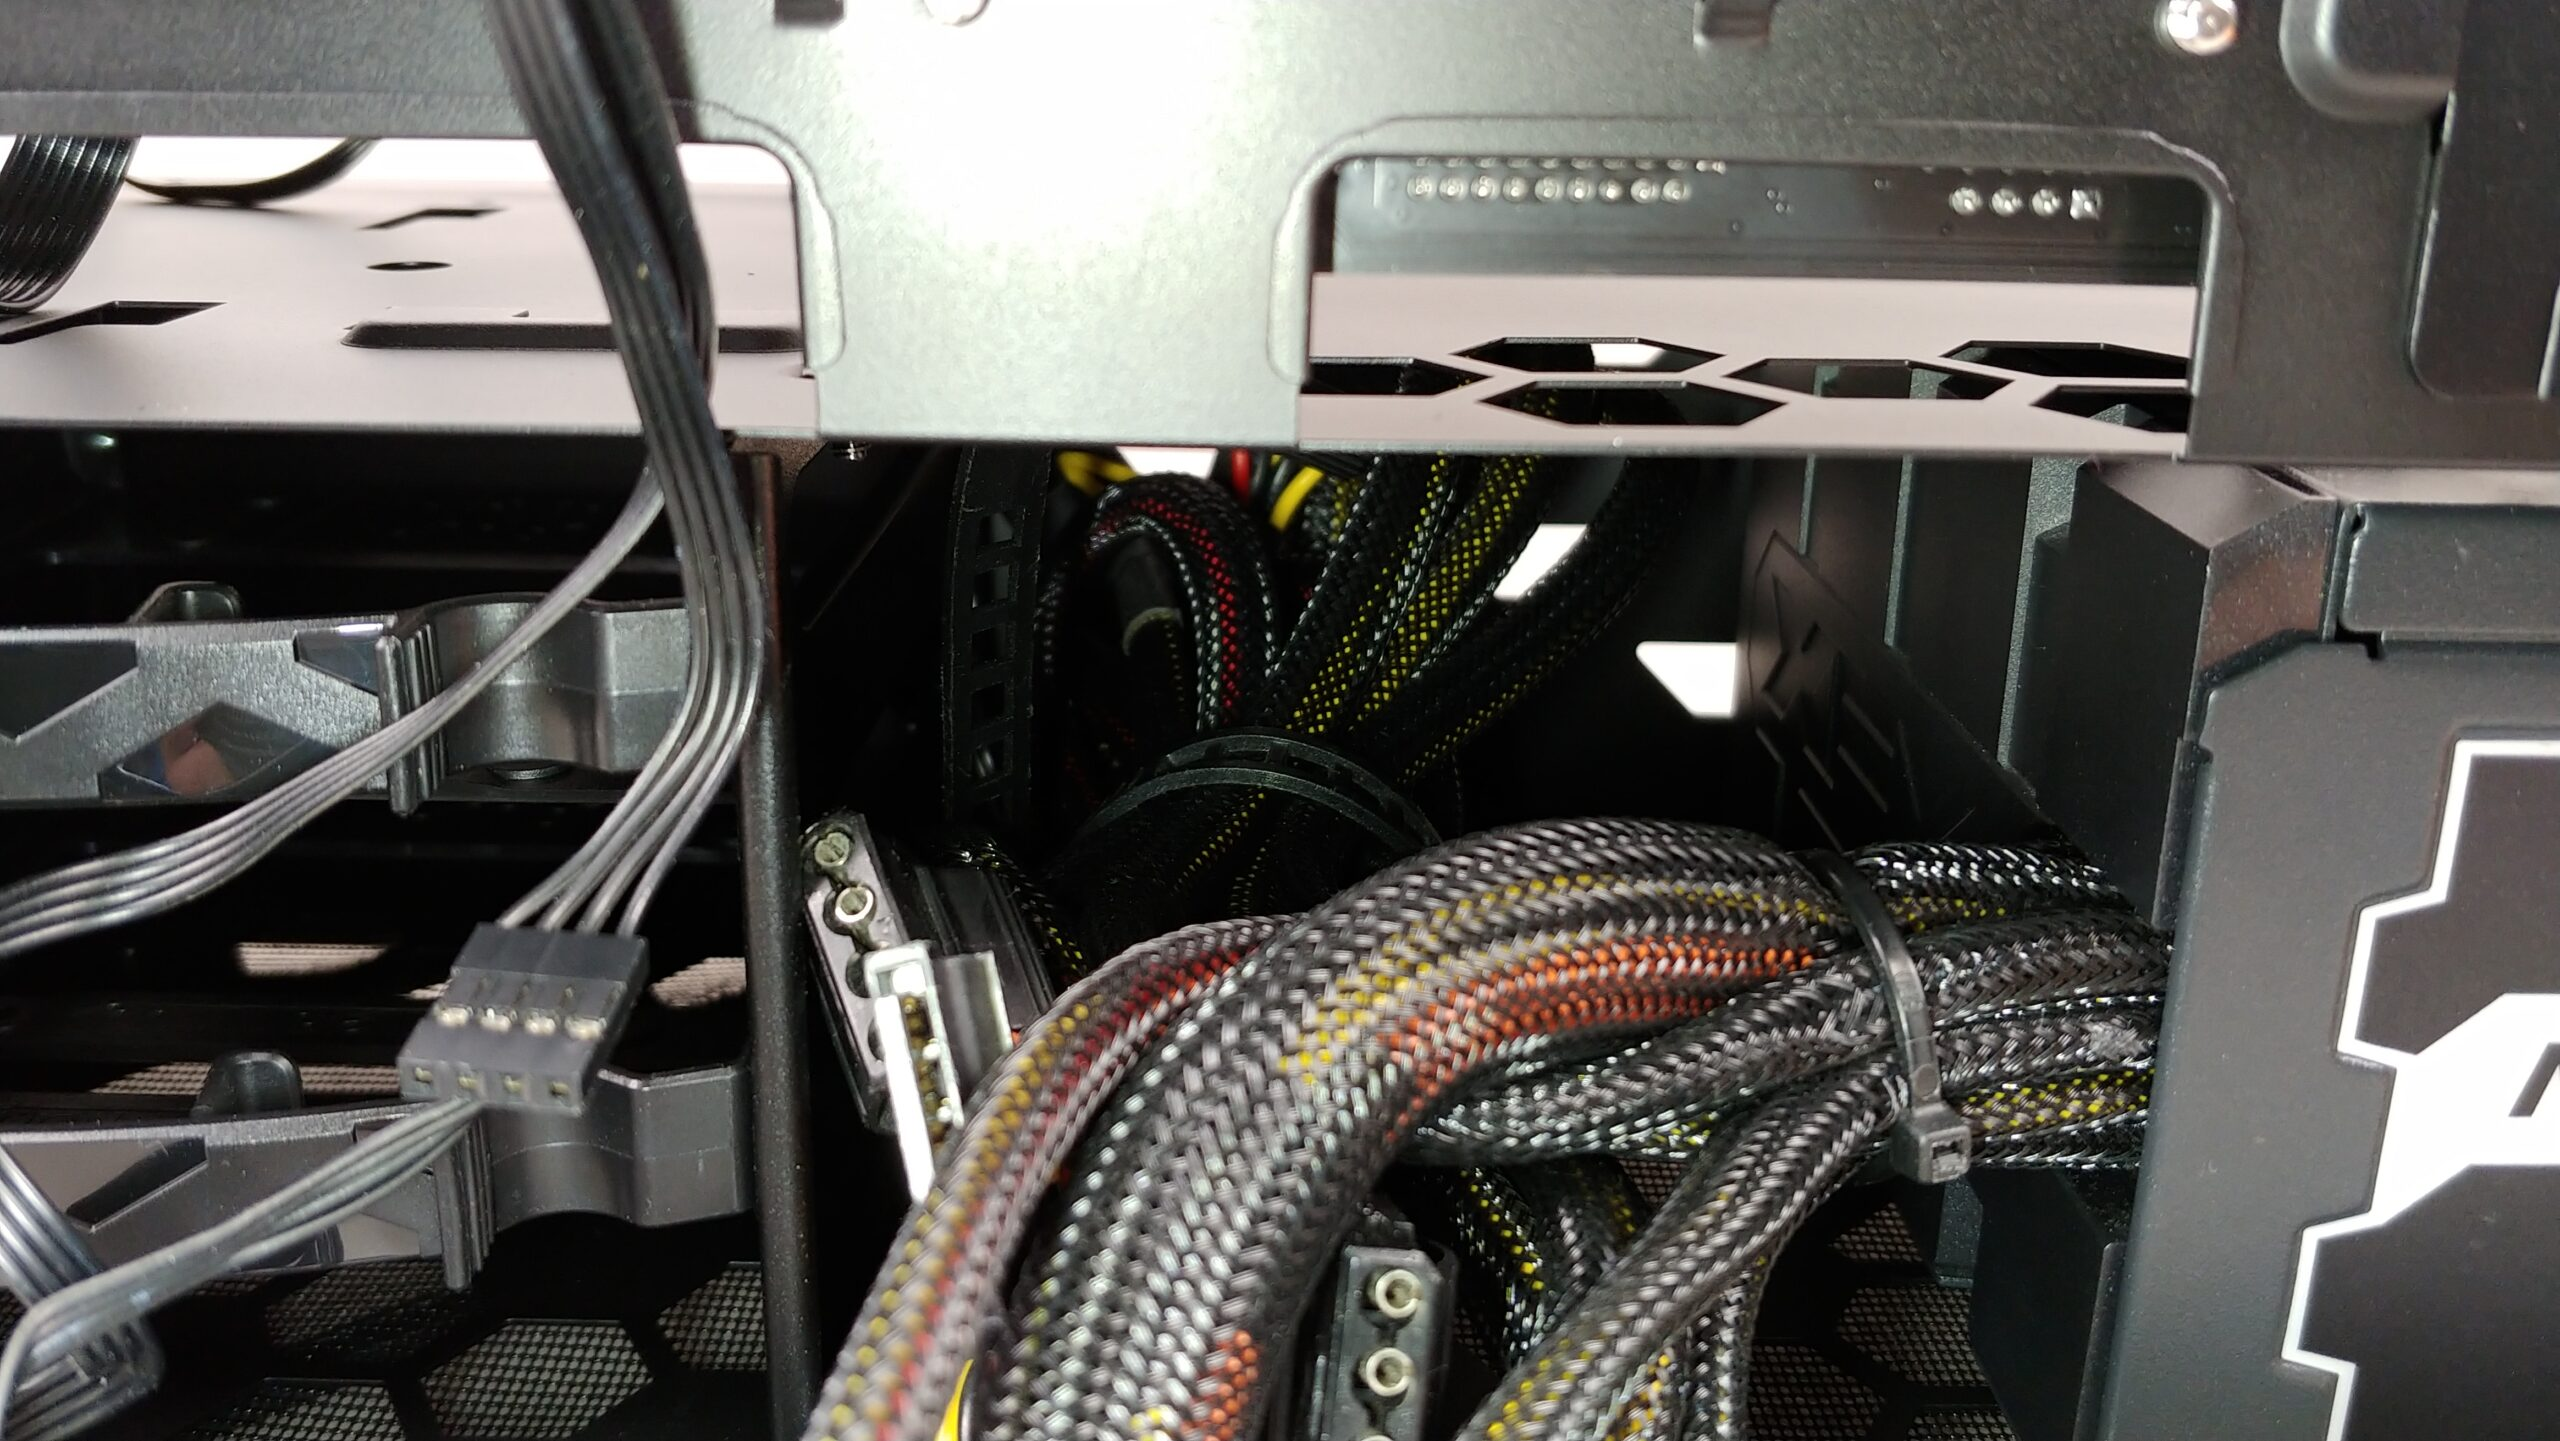 Close up of the PSU cables snugly tucked in the InWin 216.